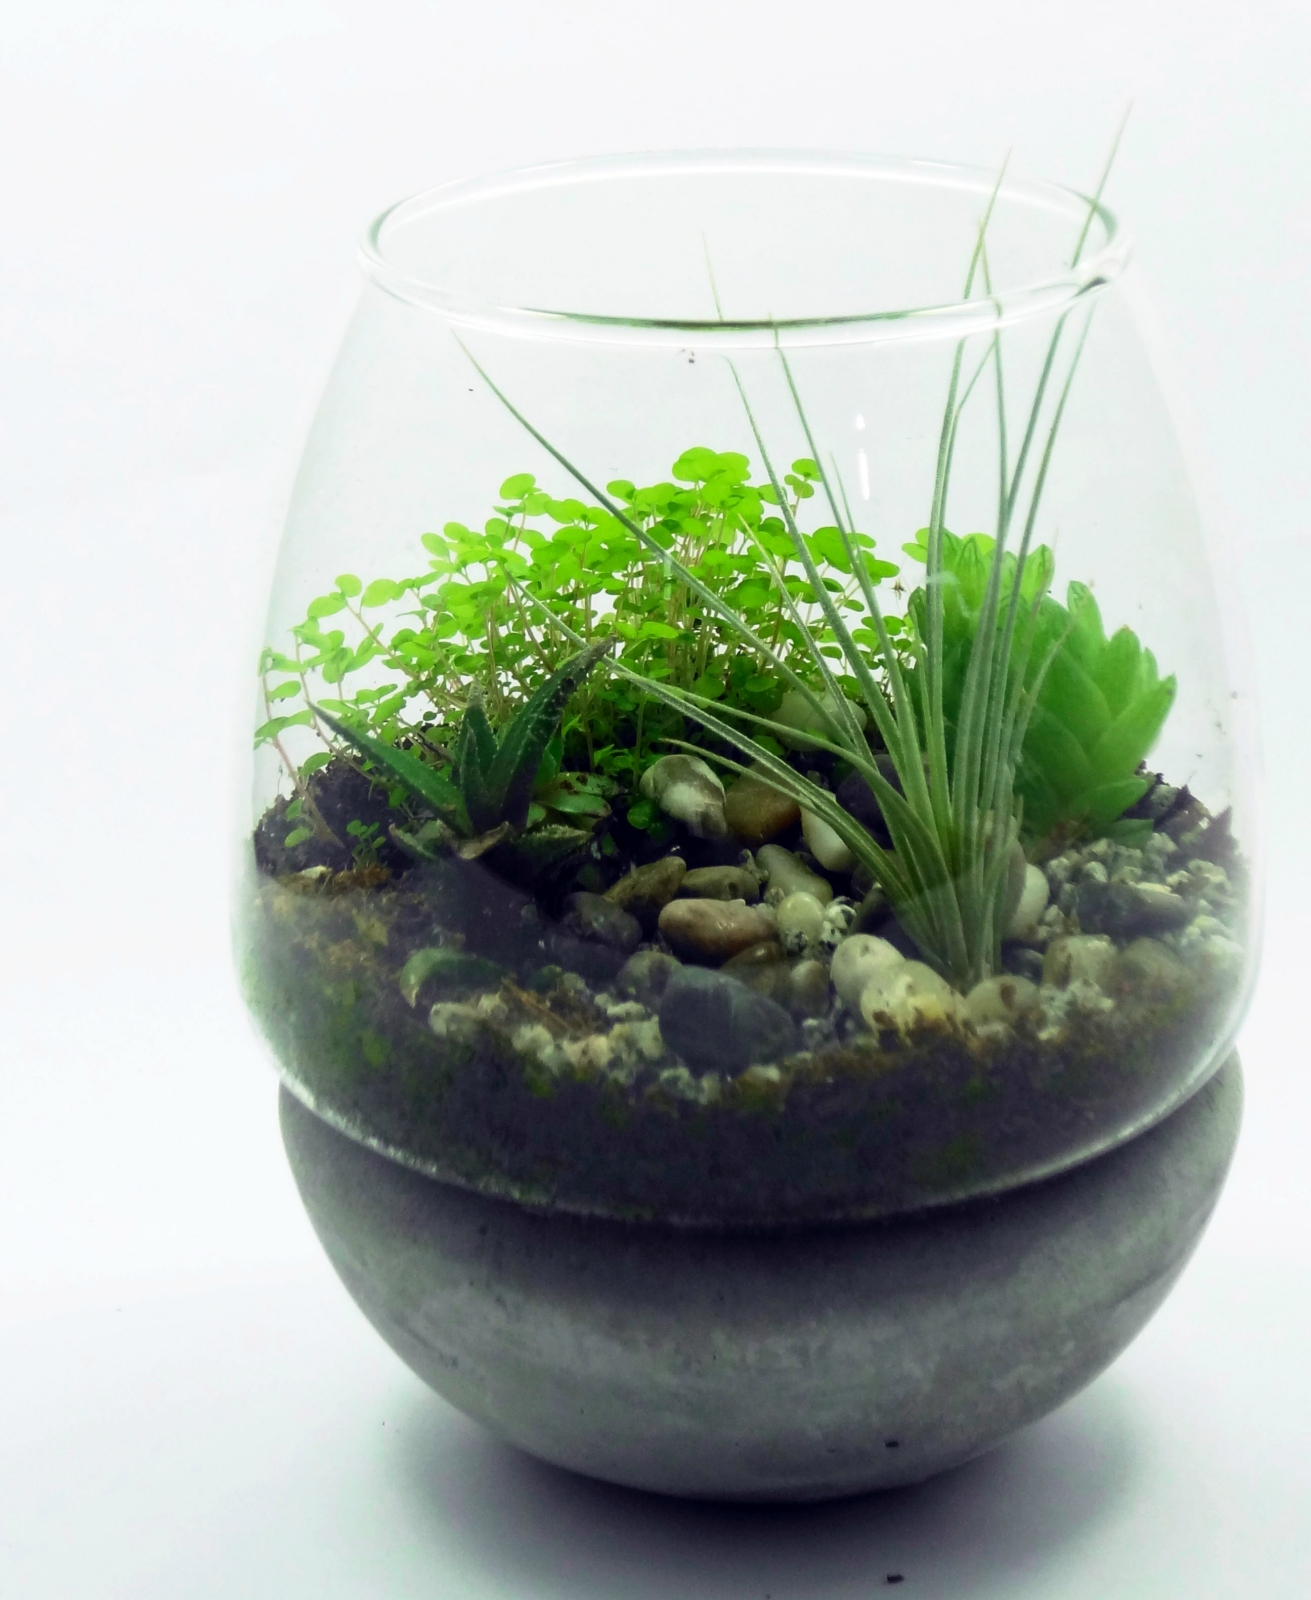 ecobubbles air plant succulent terrarium kit felt. Black Bedroom Furniture Sets. Home Design Ideas